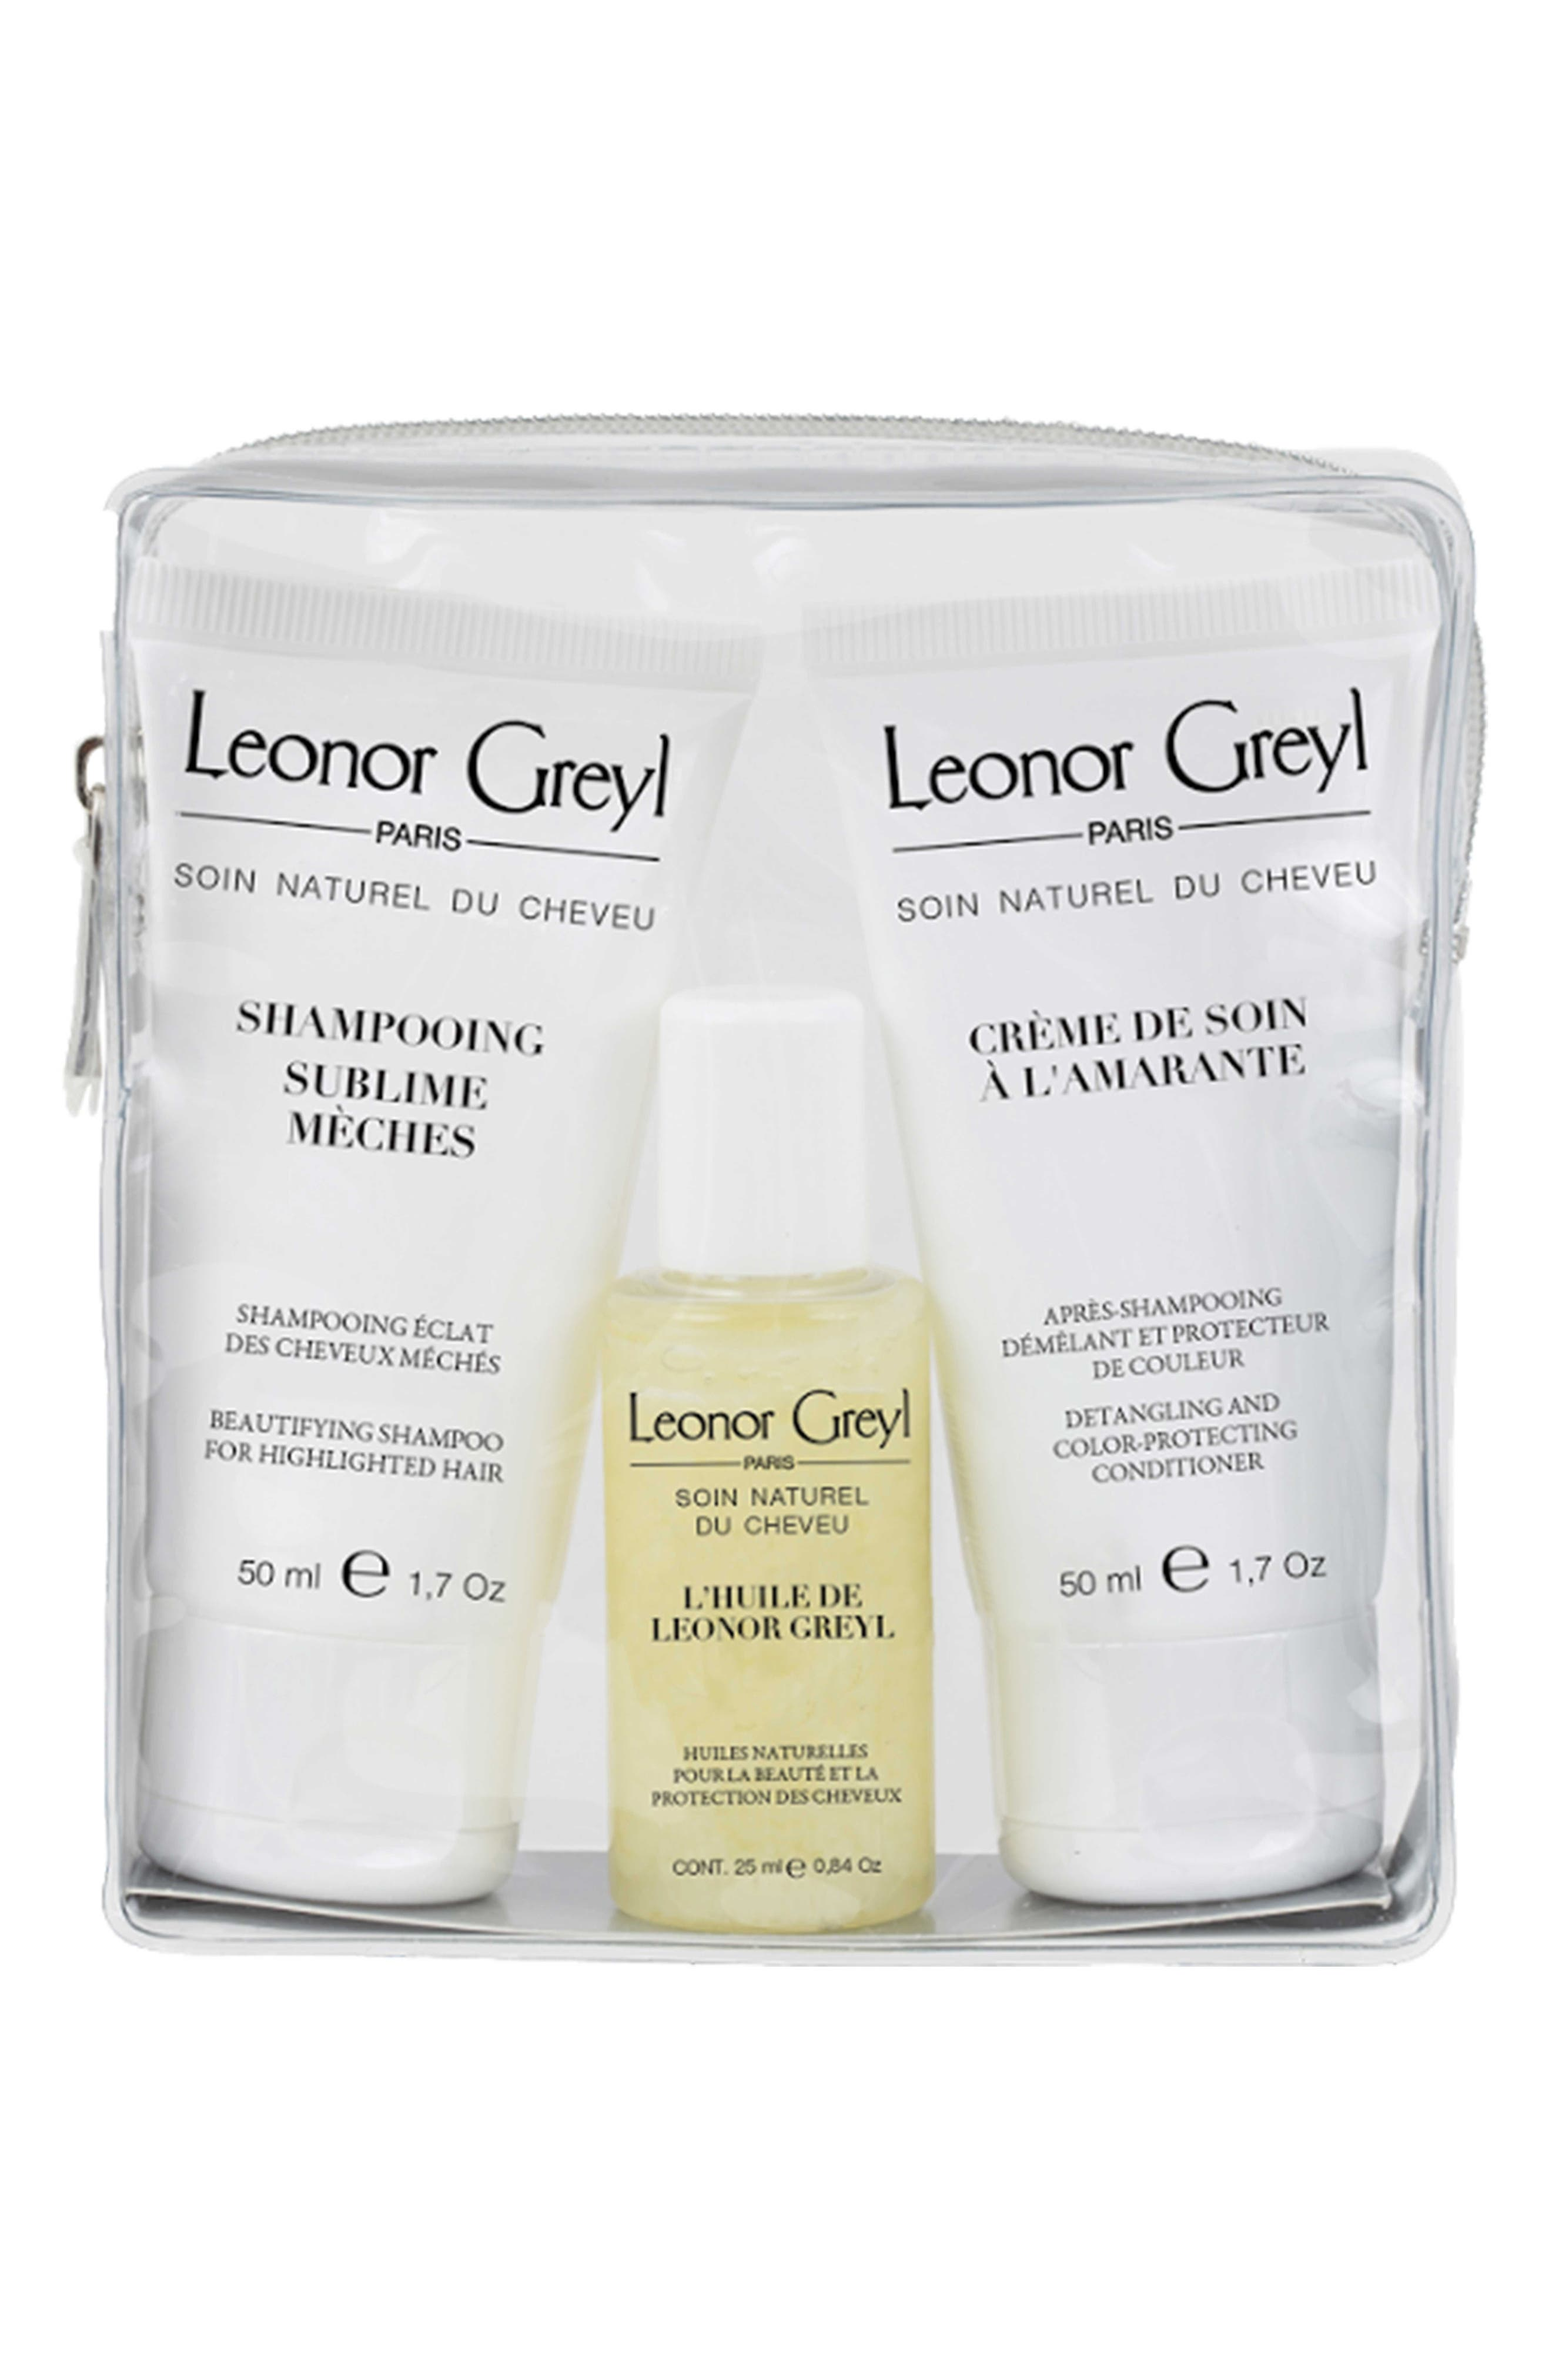 Main Image - Leonor Greyl PARIS Luxury Travel Kit for Color Treated Hair